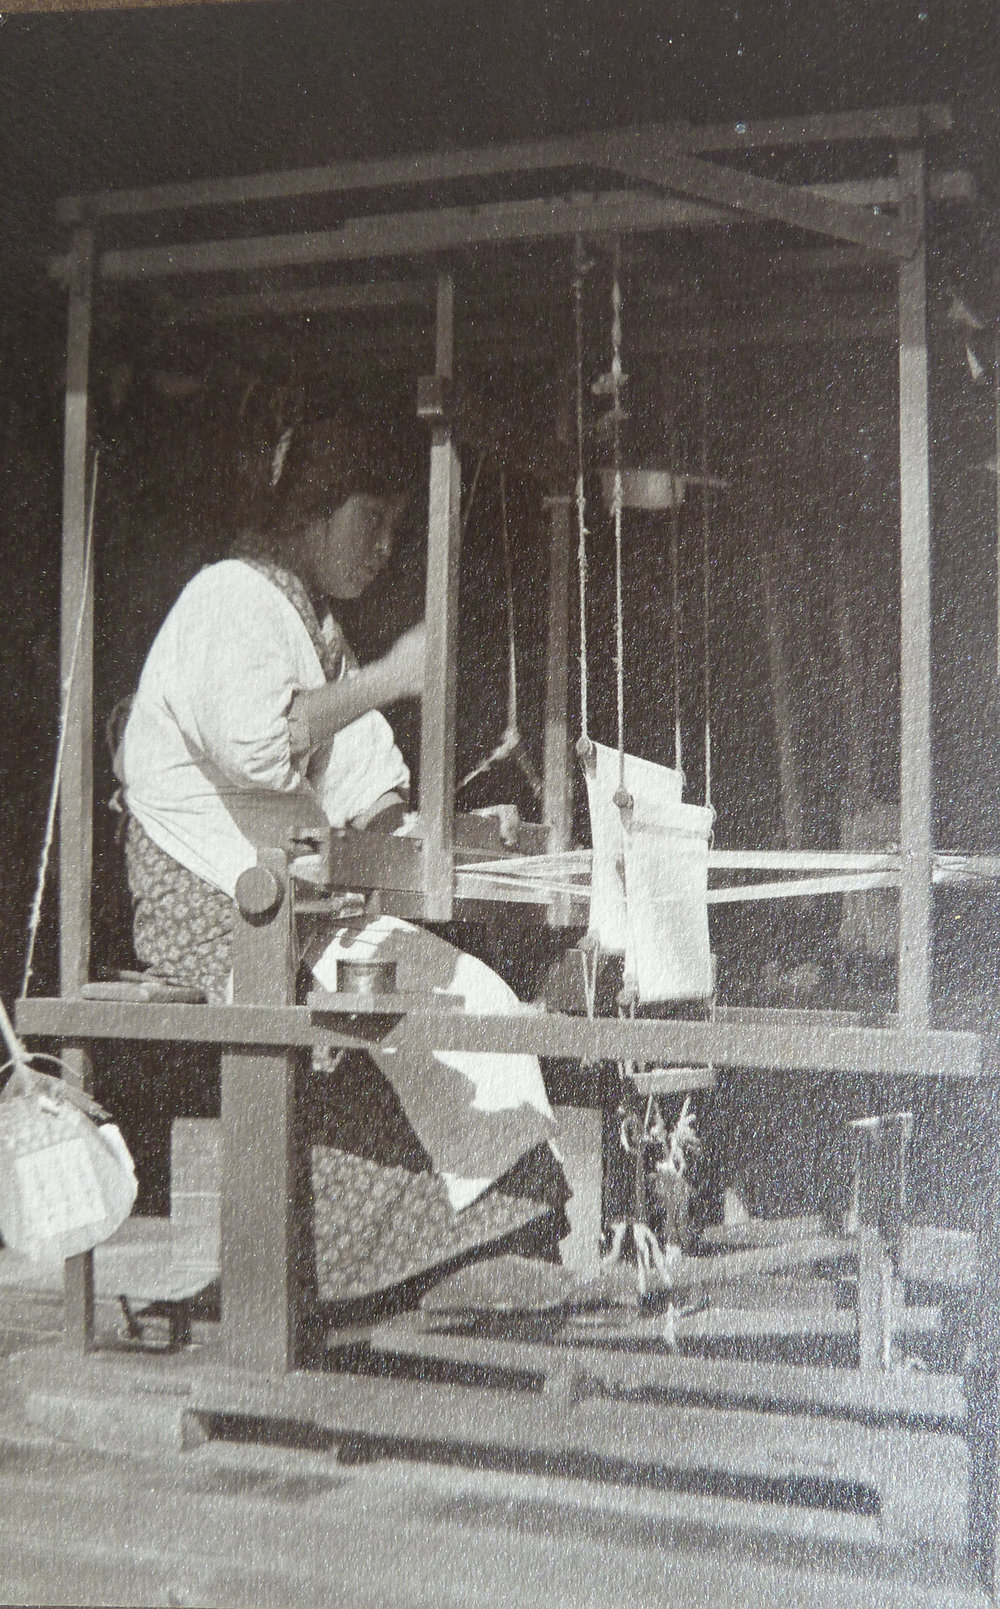 At the Loom, 1923-24, F.J. Anderson photographer